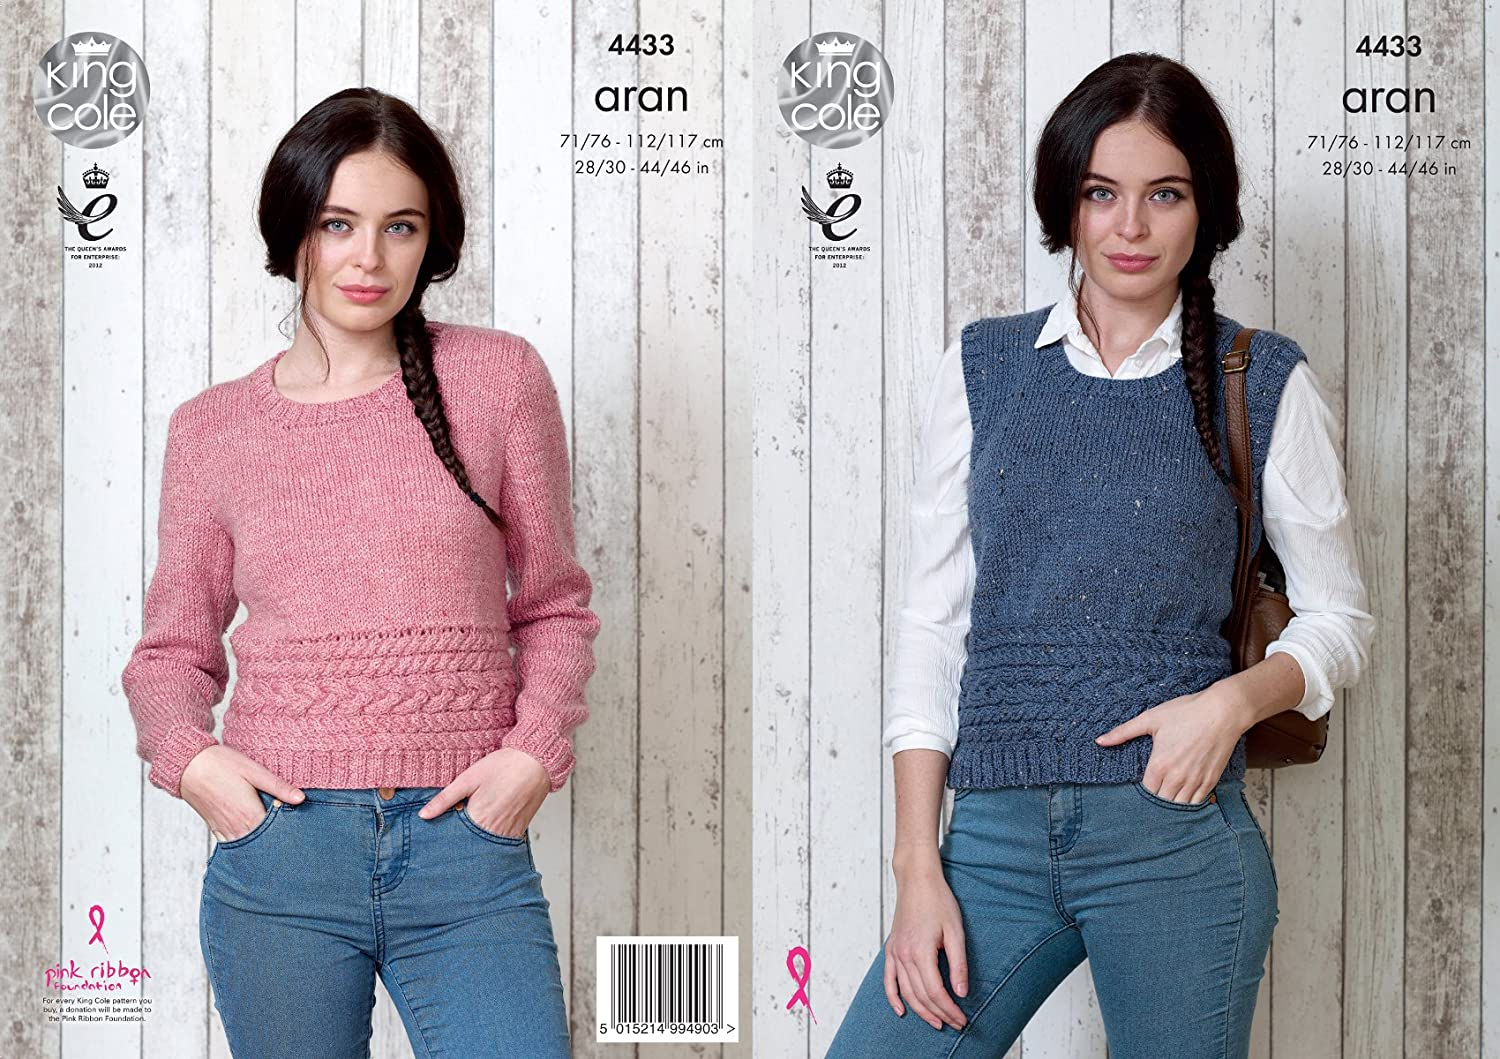 King Cole Ladies Knitting Pattern Womens Cable Detail Slipover & Sweater Big Value Aran (4433)